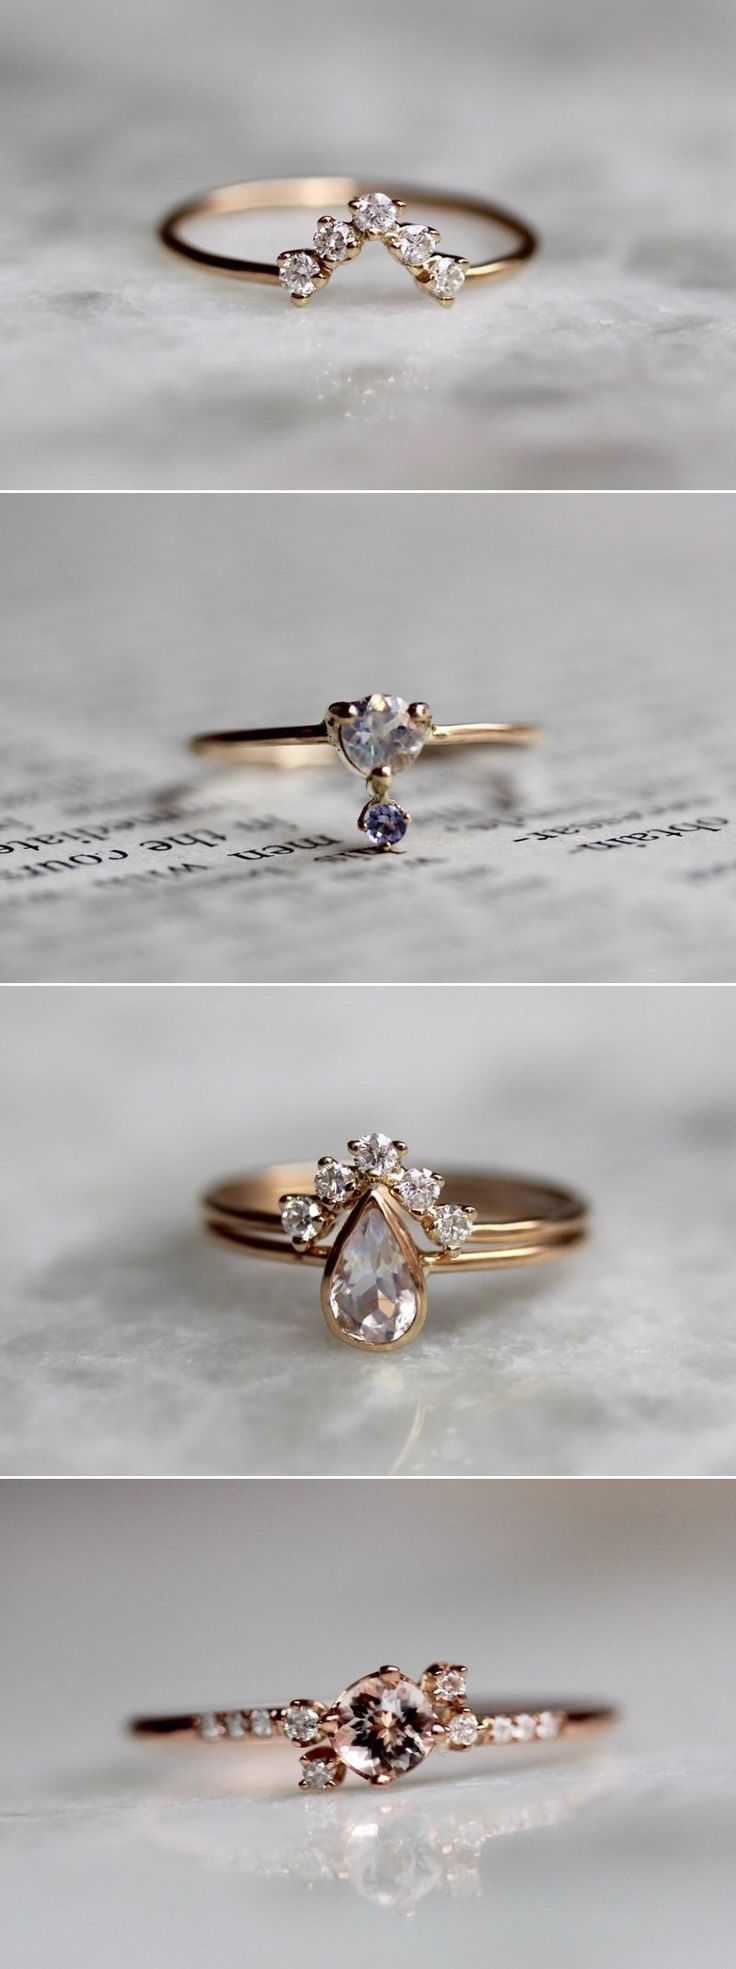 Best 25+ Engagement Ring Simple Ideas On Pinterest  Wedding Rings Simple,  Best Wedding Rings And Thin Engagement Rings